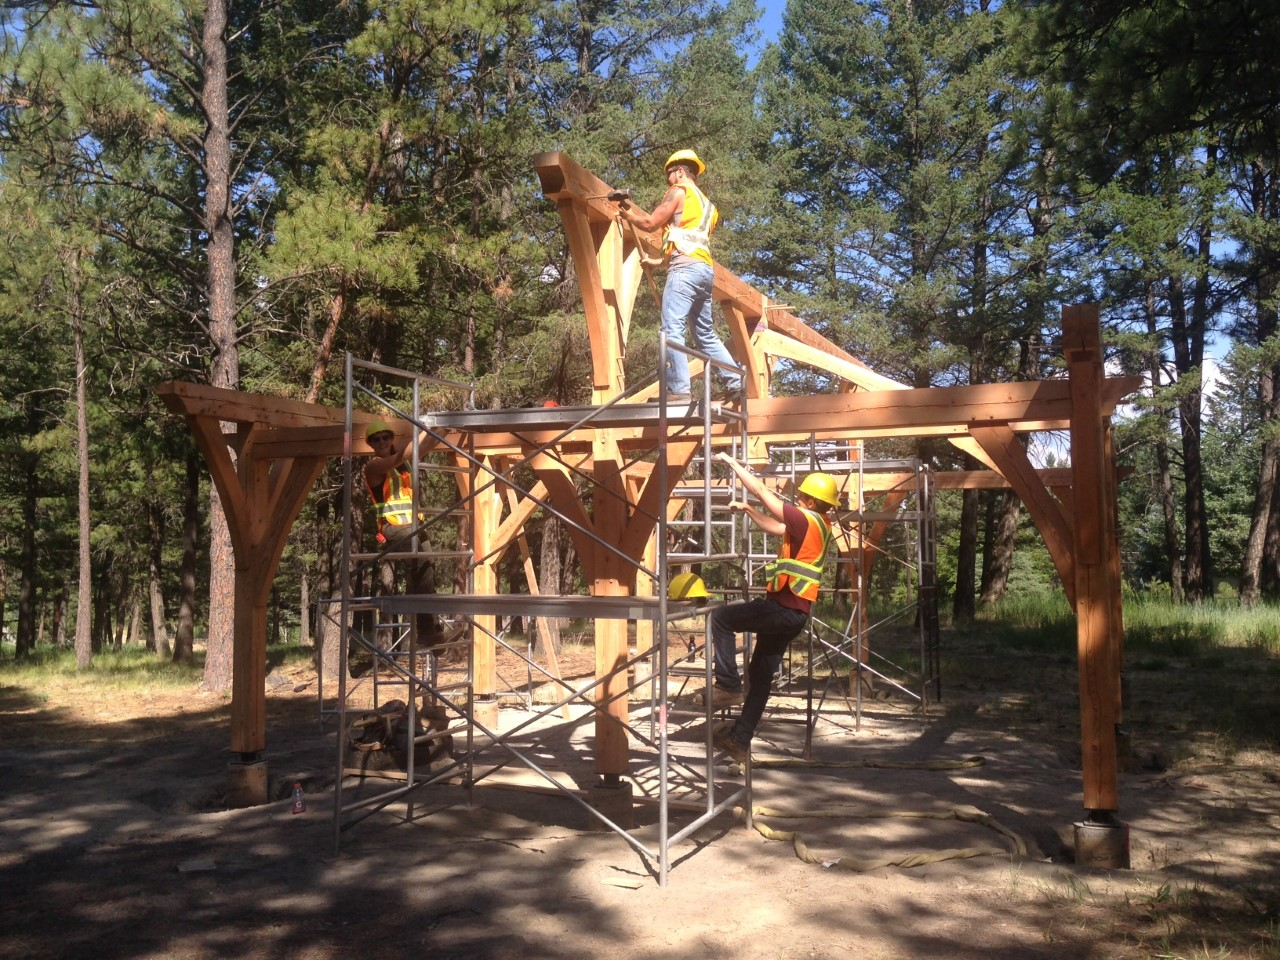 COTR Students raising new pavilion in Idlewild Park